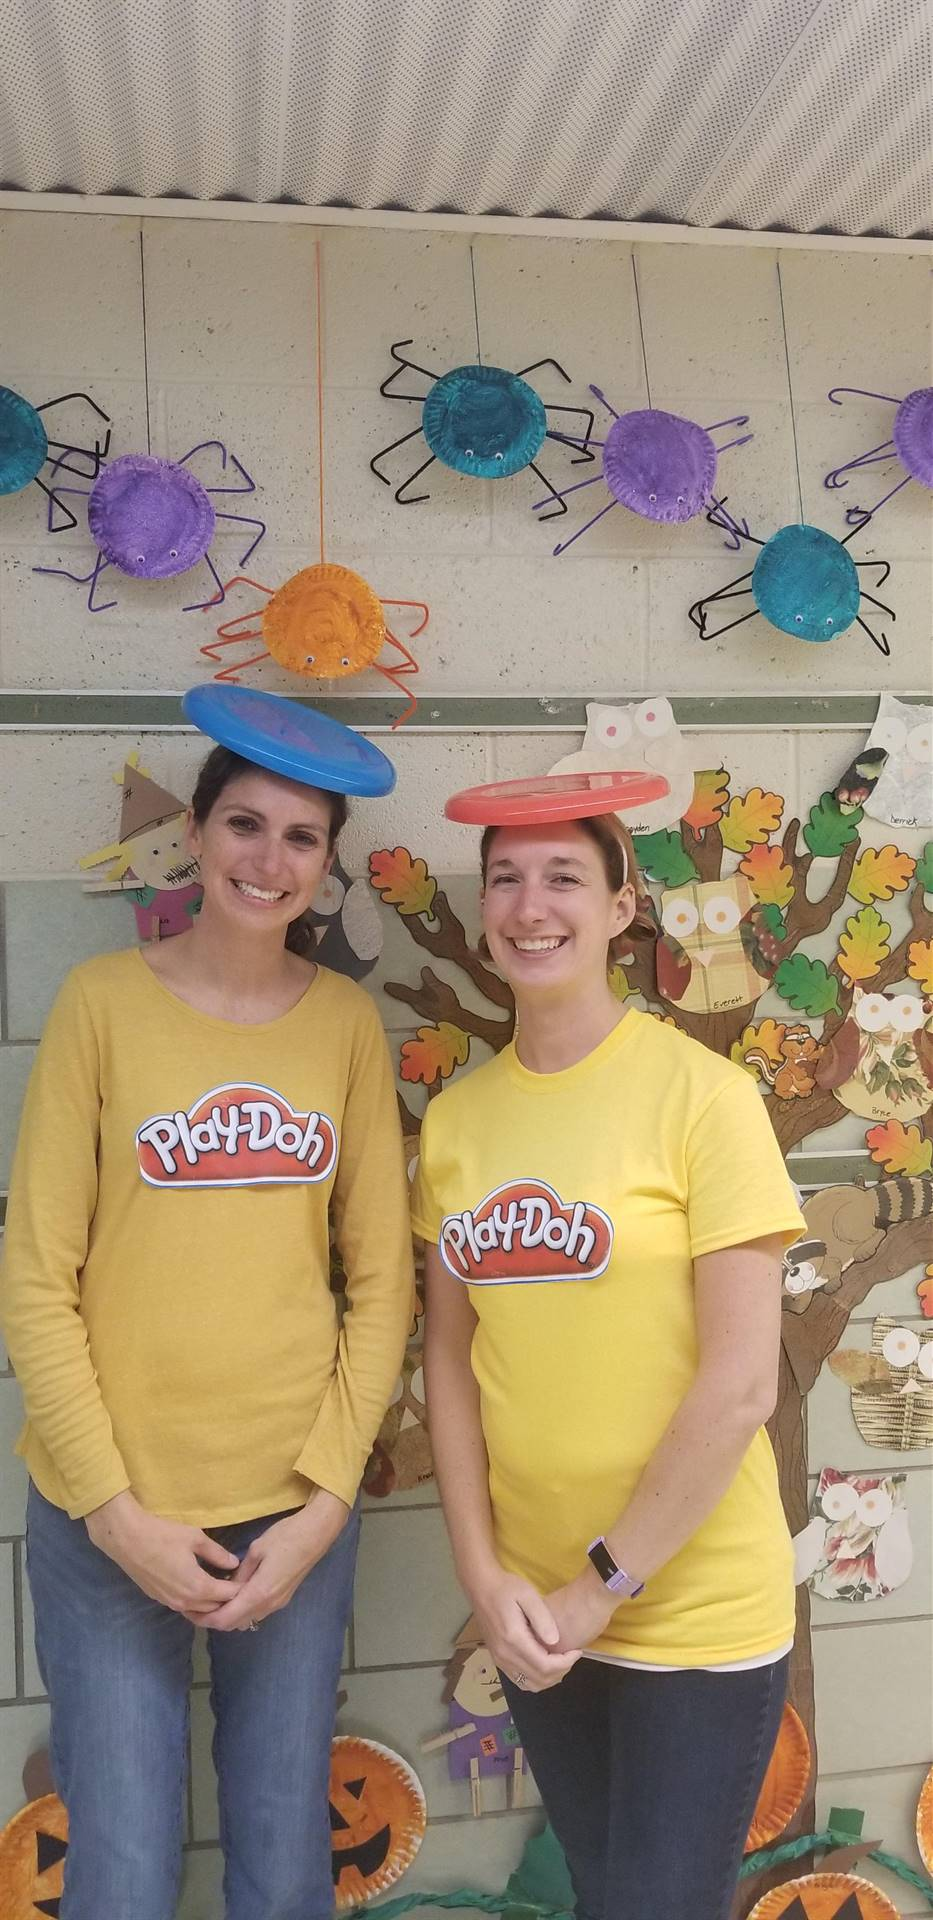 2 ladies with playdoh costumes